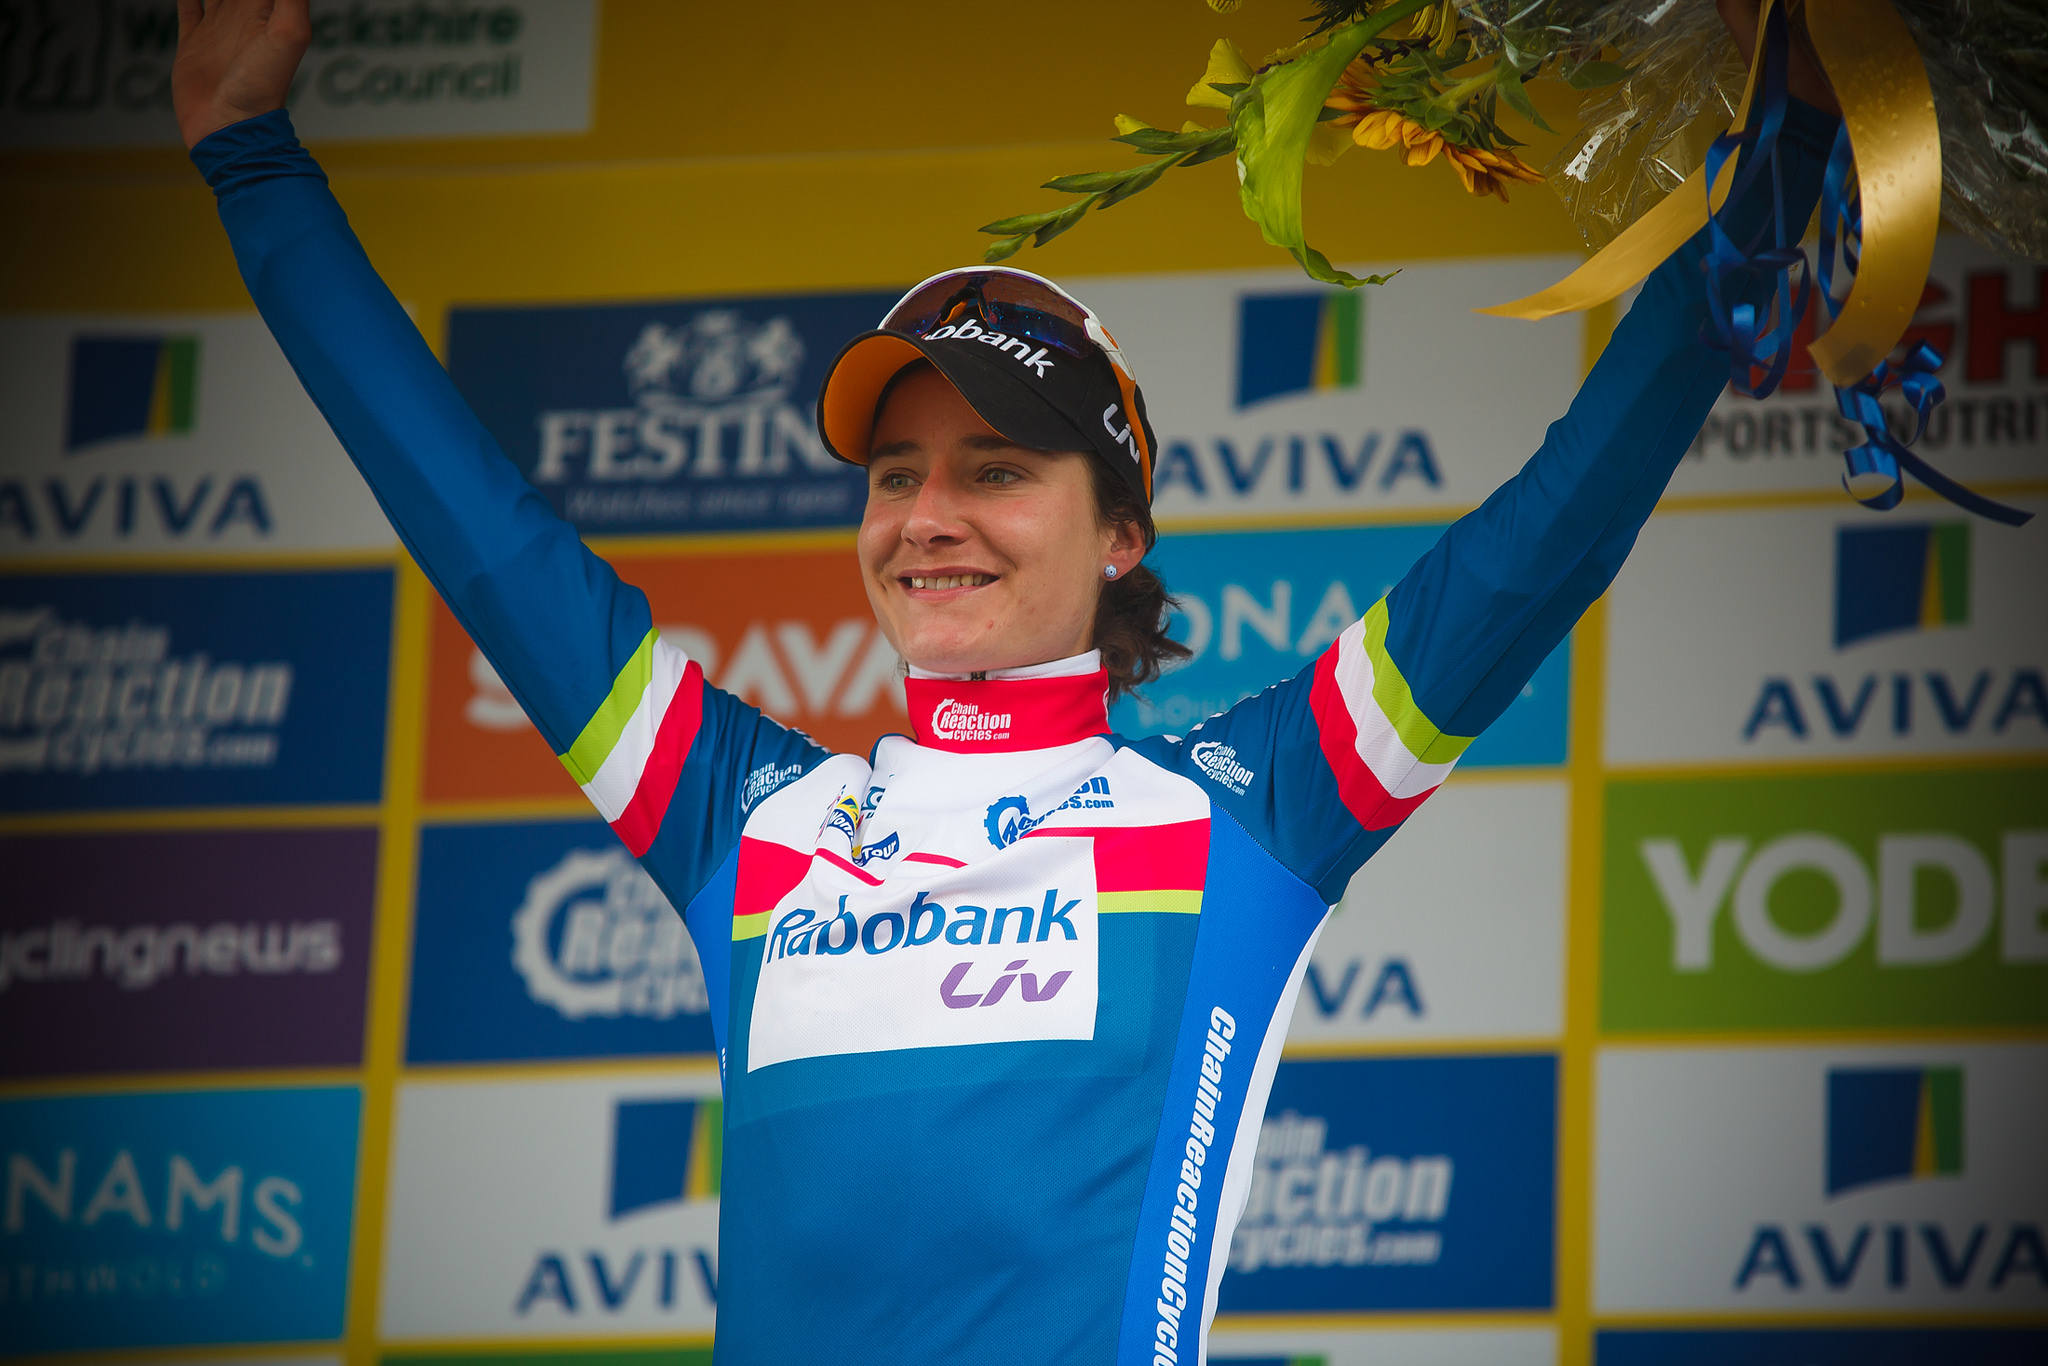 Marianne Vos (Rabo-Liv) leads the points classification and the GC after the 2016 Aviva Women's Tour stage 2.